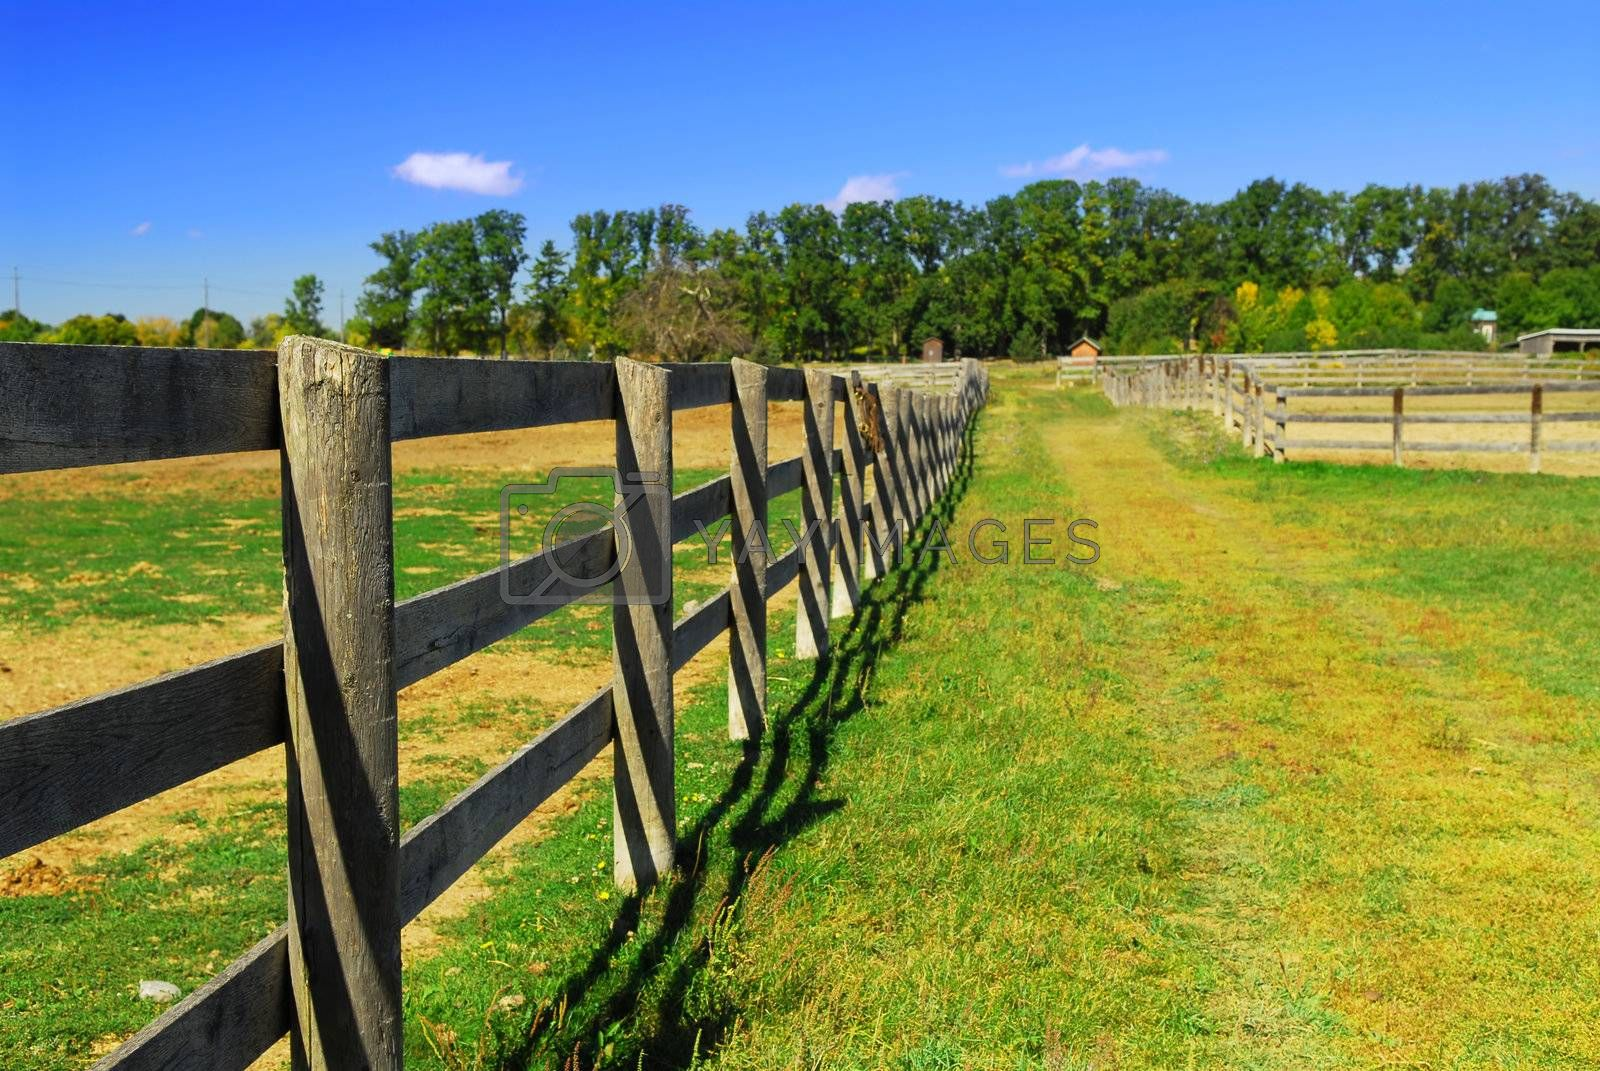 Wooden farm fence and road in rural Ontario, Canada.